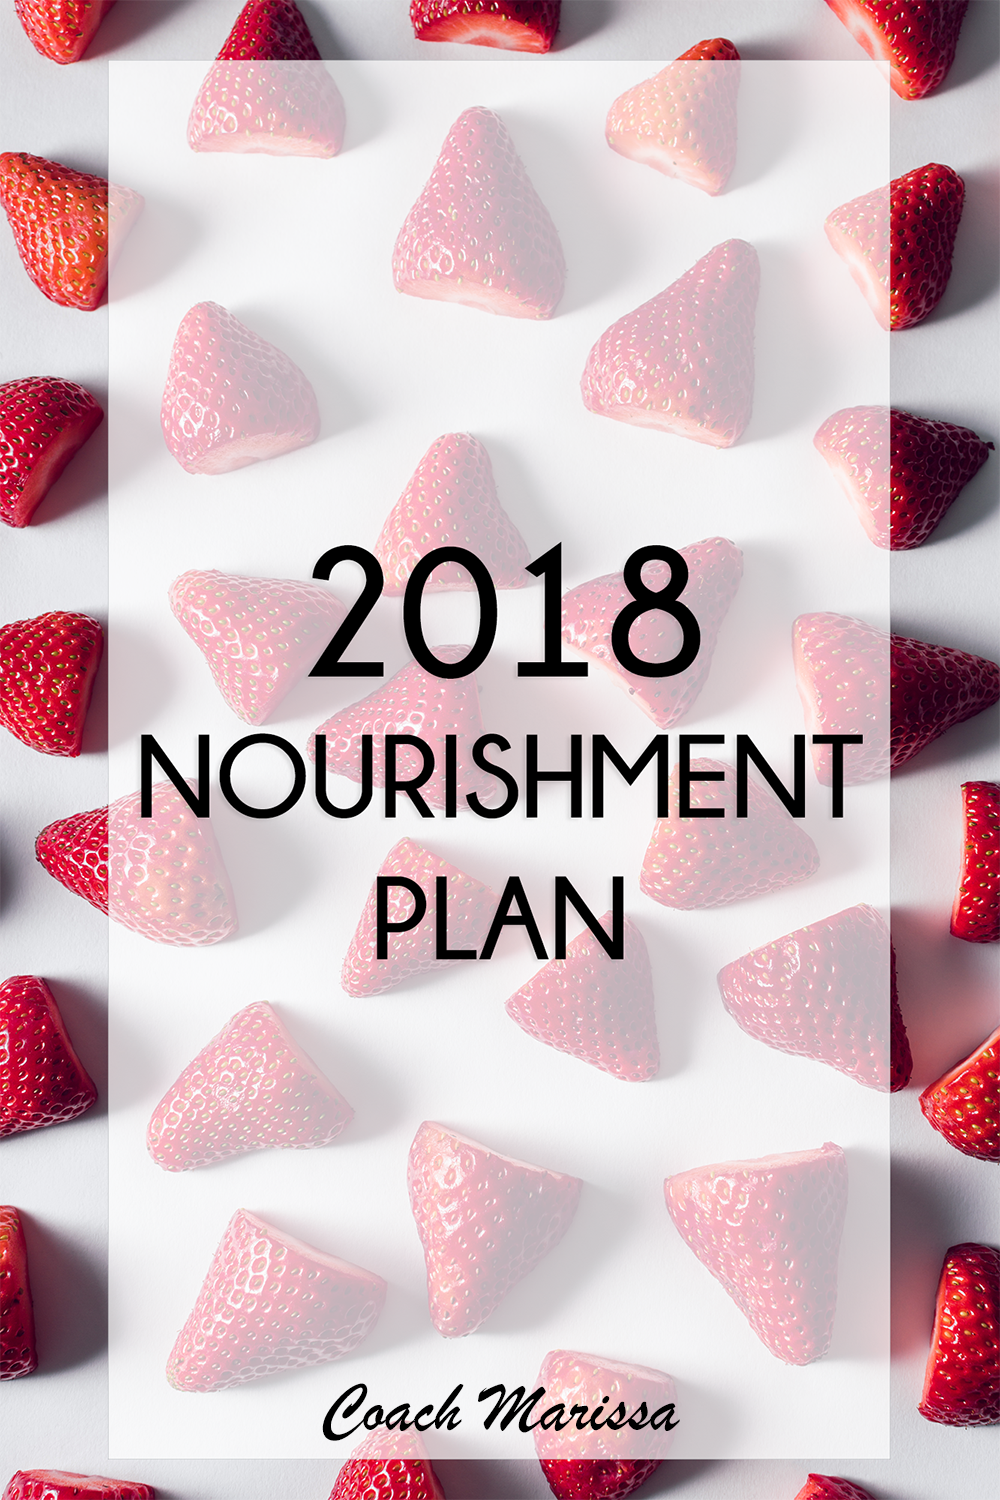 2018 nourishment plan - here is my diet to take care of my body and be healthy this year!